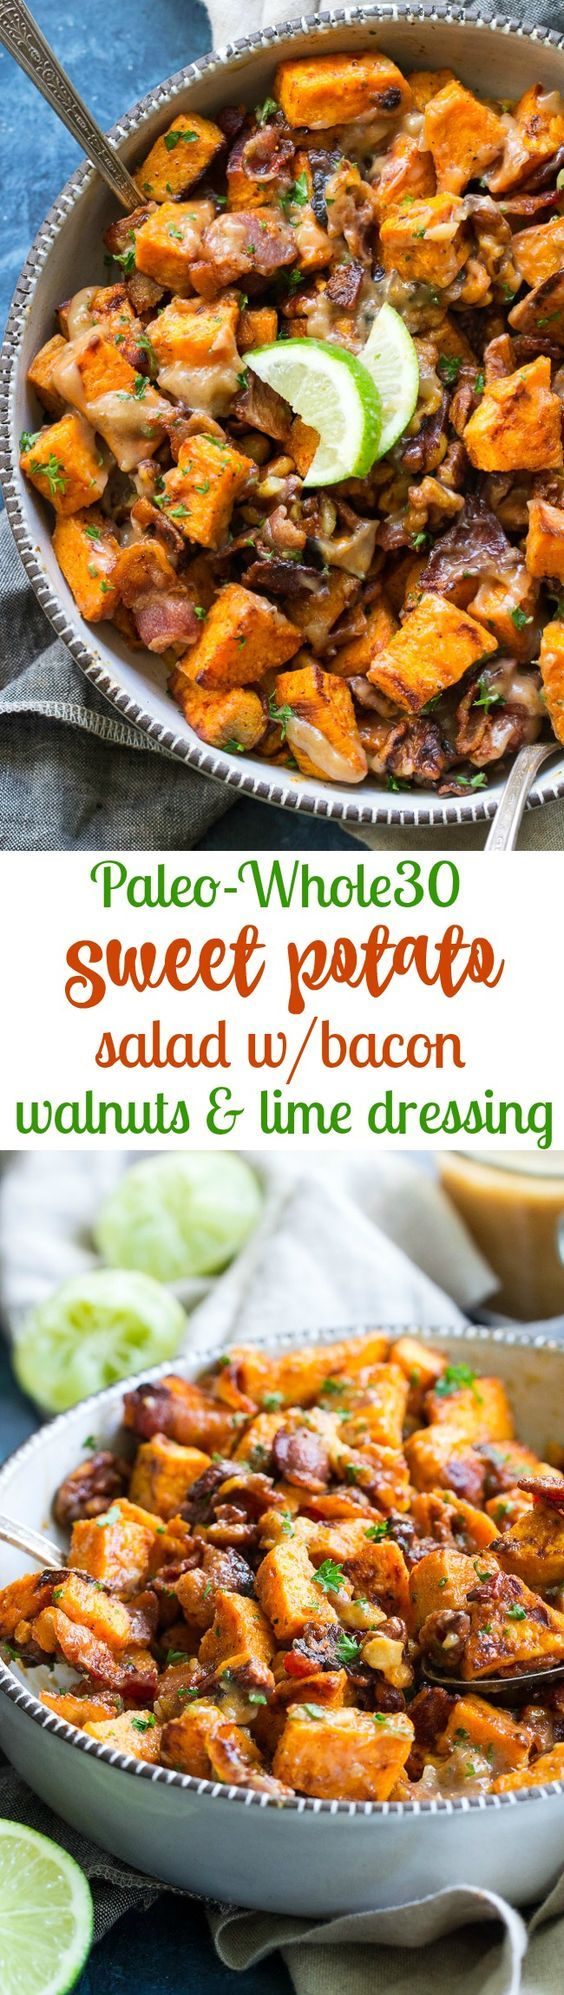 This roasted sweet potato salad is packed with crispy bacon, toasted walnuts, and tossed in a date-sweetened lime vinaigrette. Paleo and Whole30 friendly, dairy free and easy to make, it's the perfect healthy sweet and savory side dish for your picnic, ba (sweet cocktails limes)